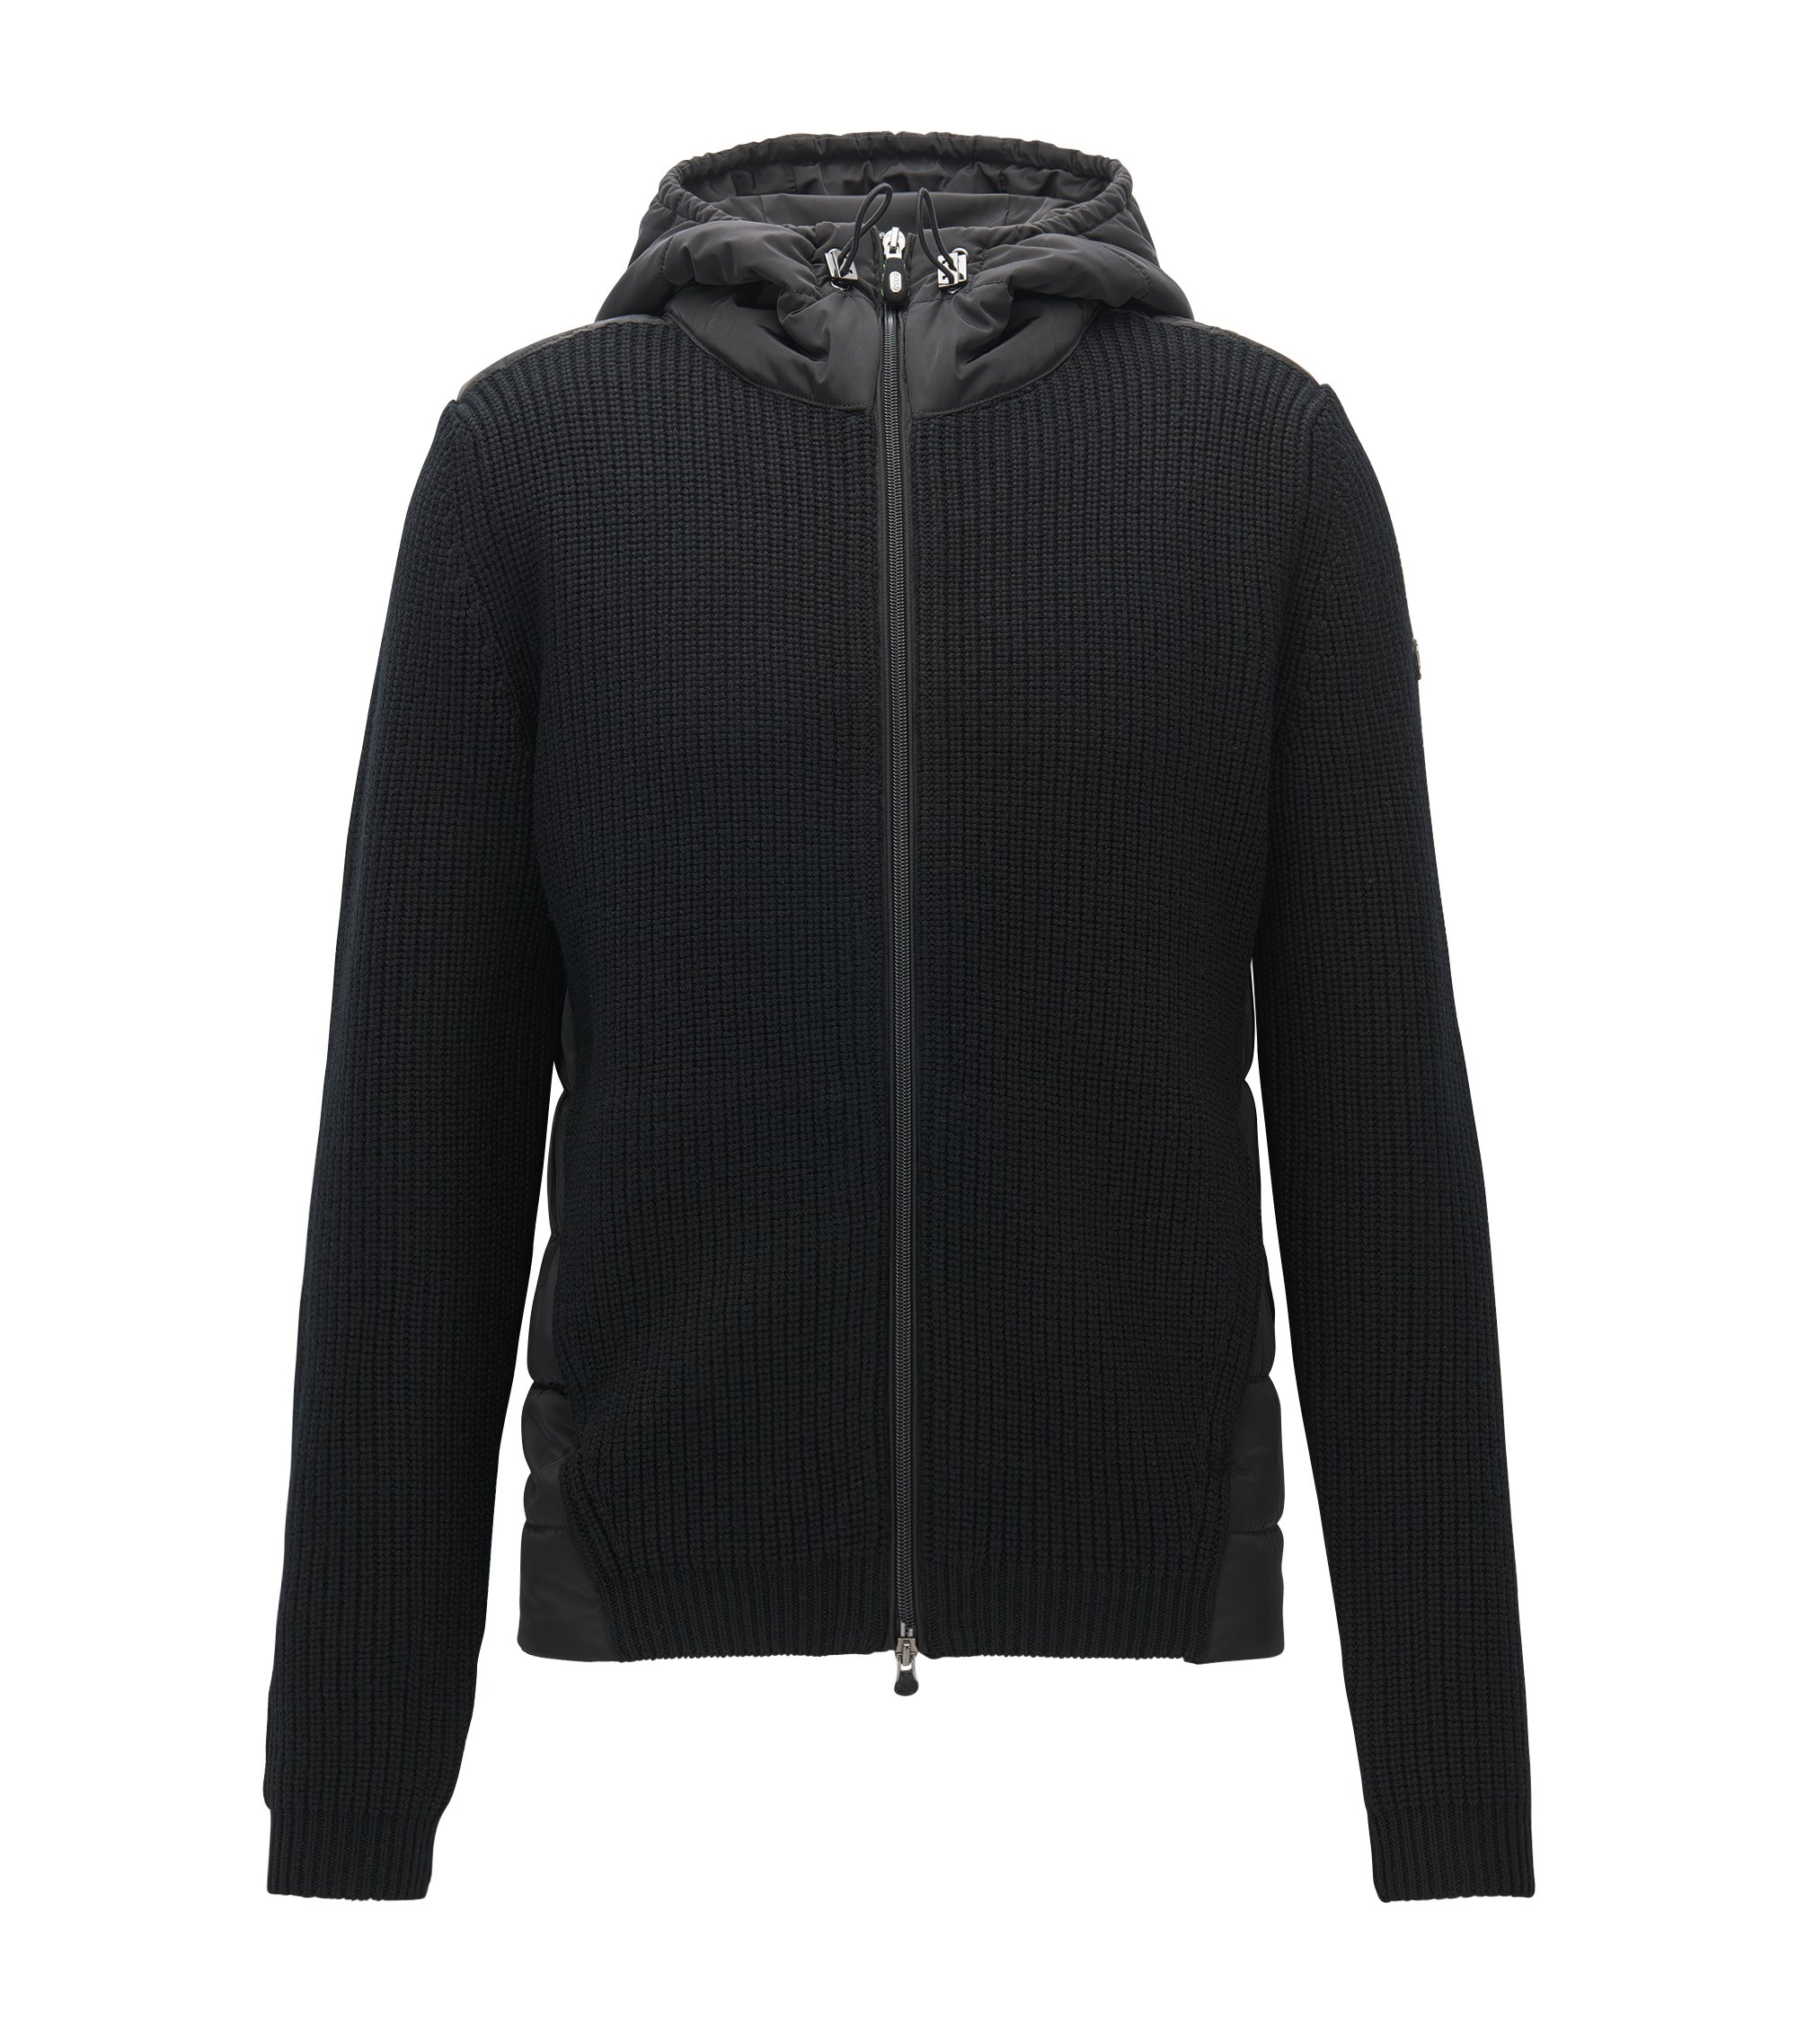 Regular-fit hooded jacket in a knitted and padded mix, Black